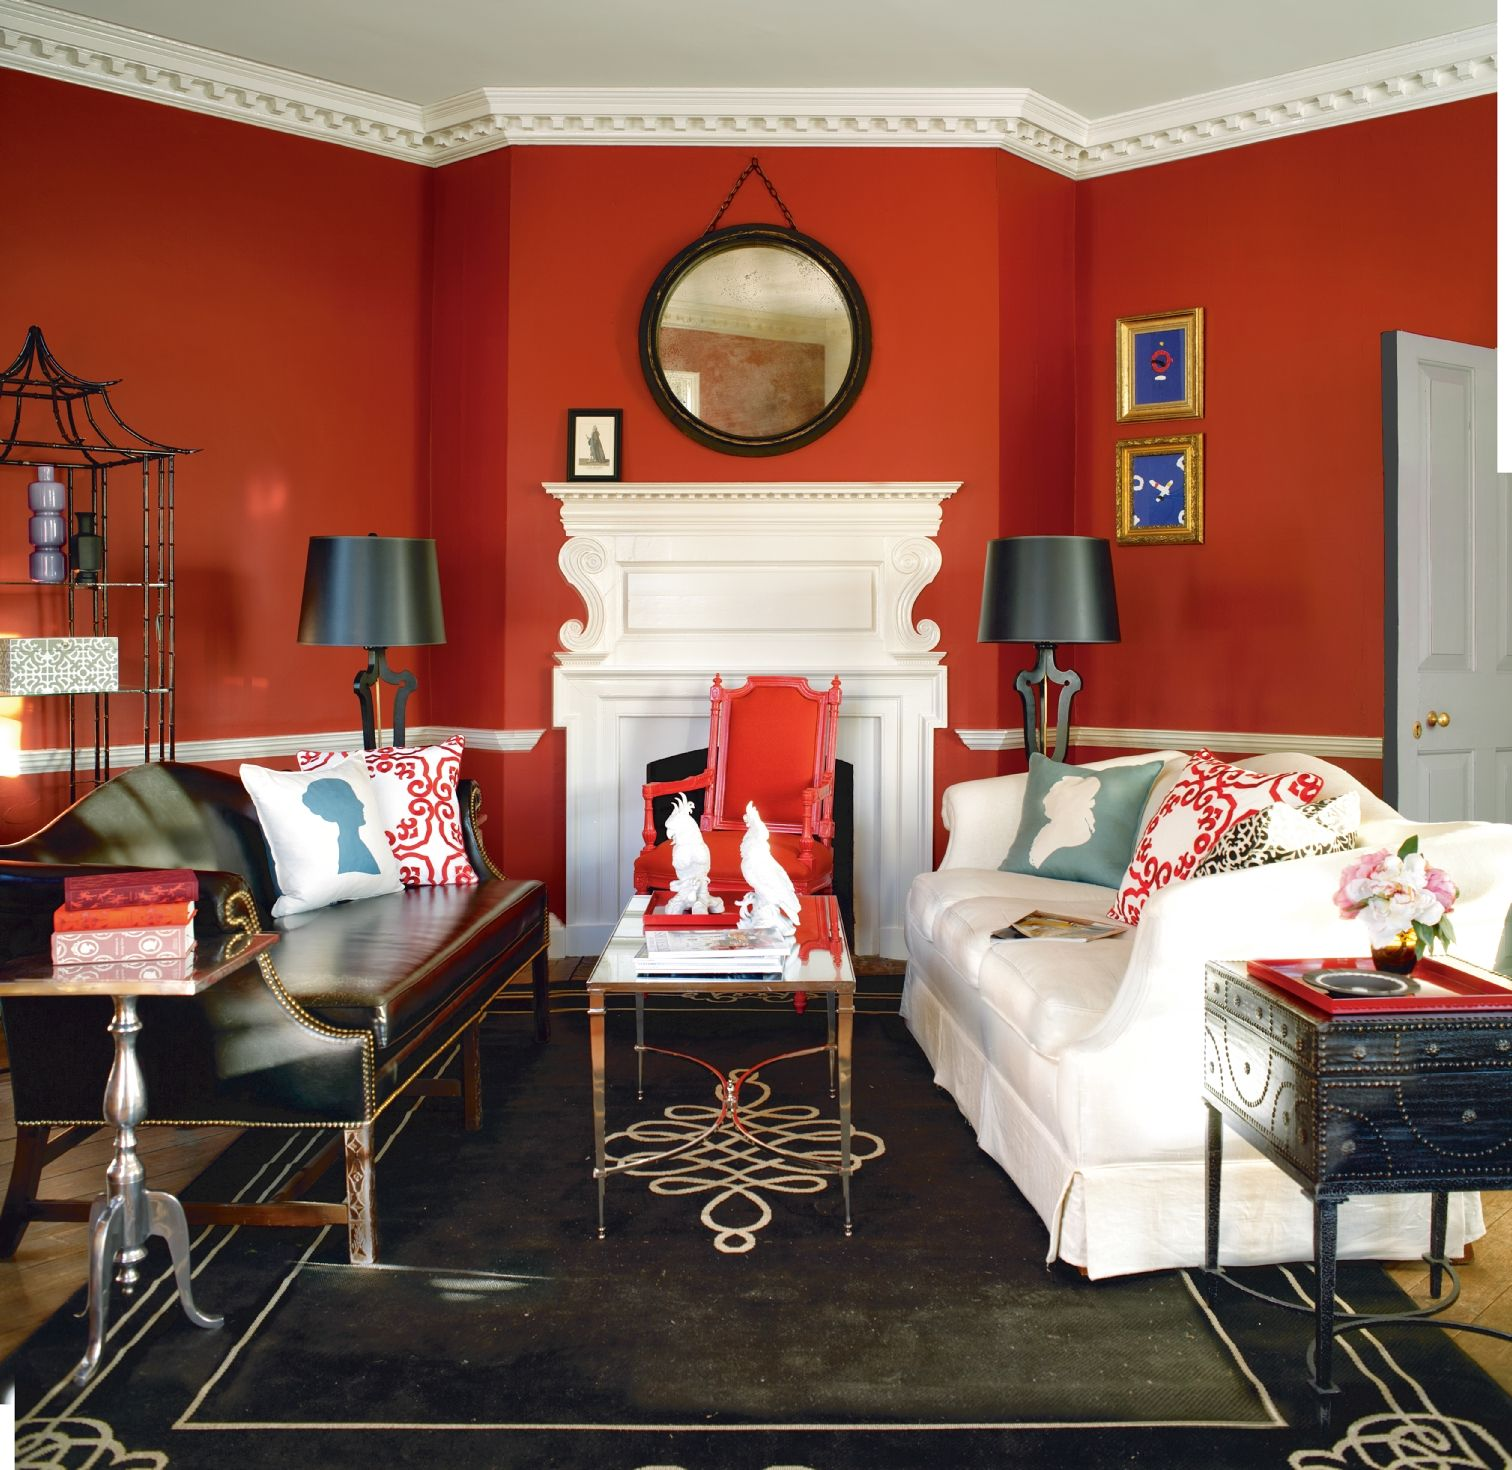 Benjamin Moore Colors For Your Living Room Decor: Benjamin Moore's Williamsburg Collection >> Walls: Aura